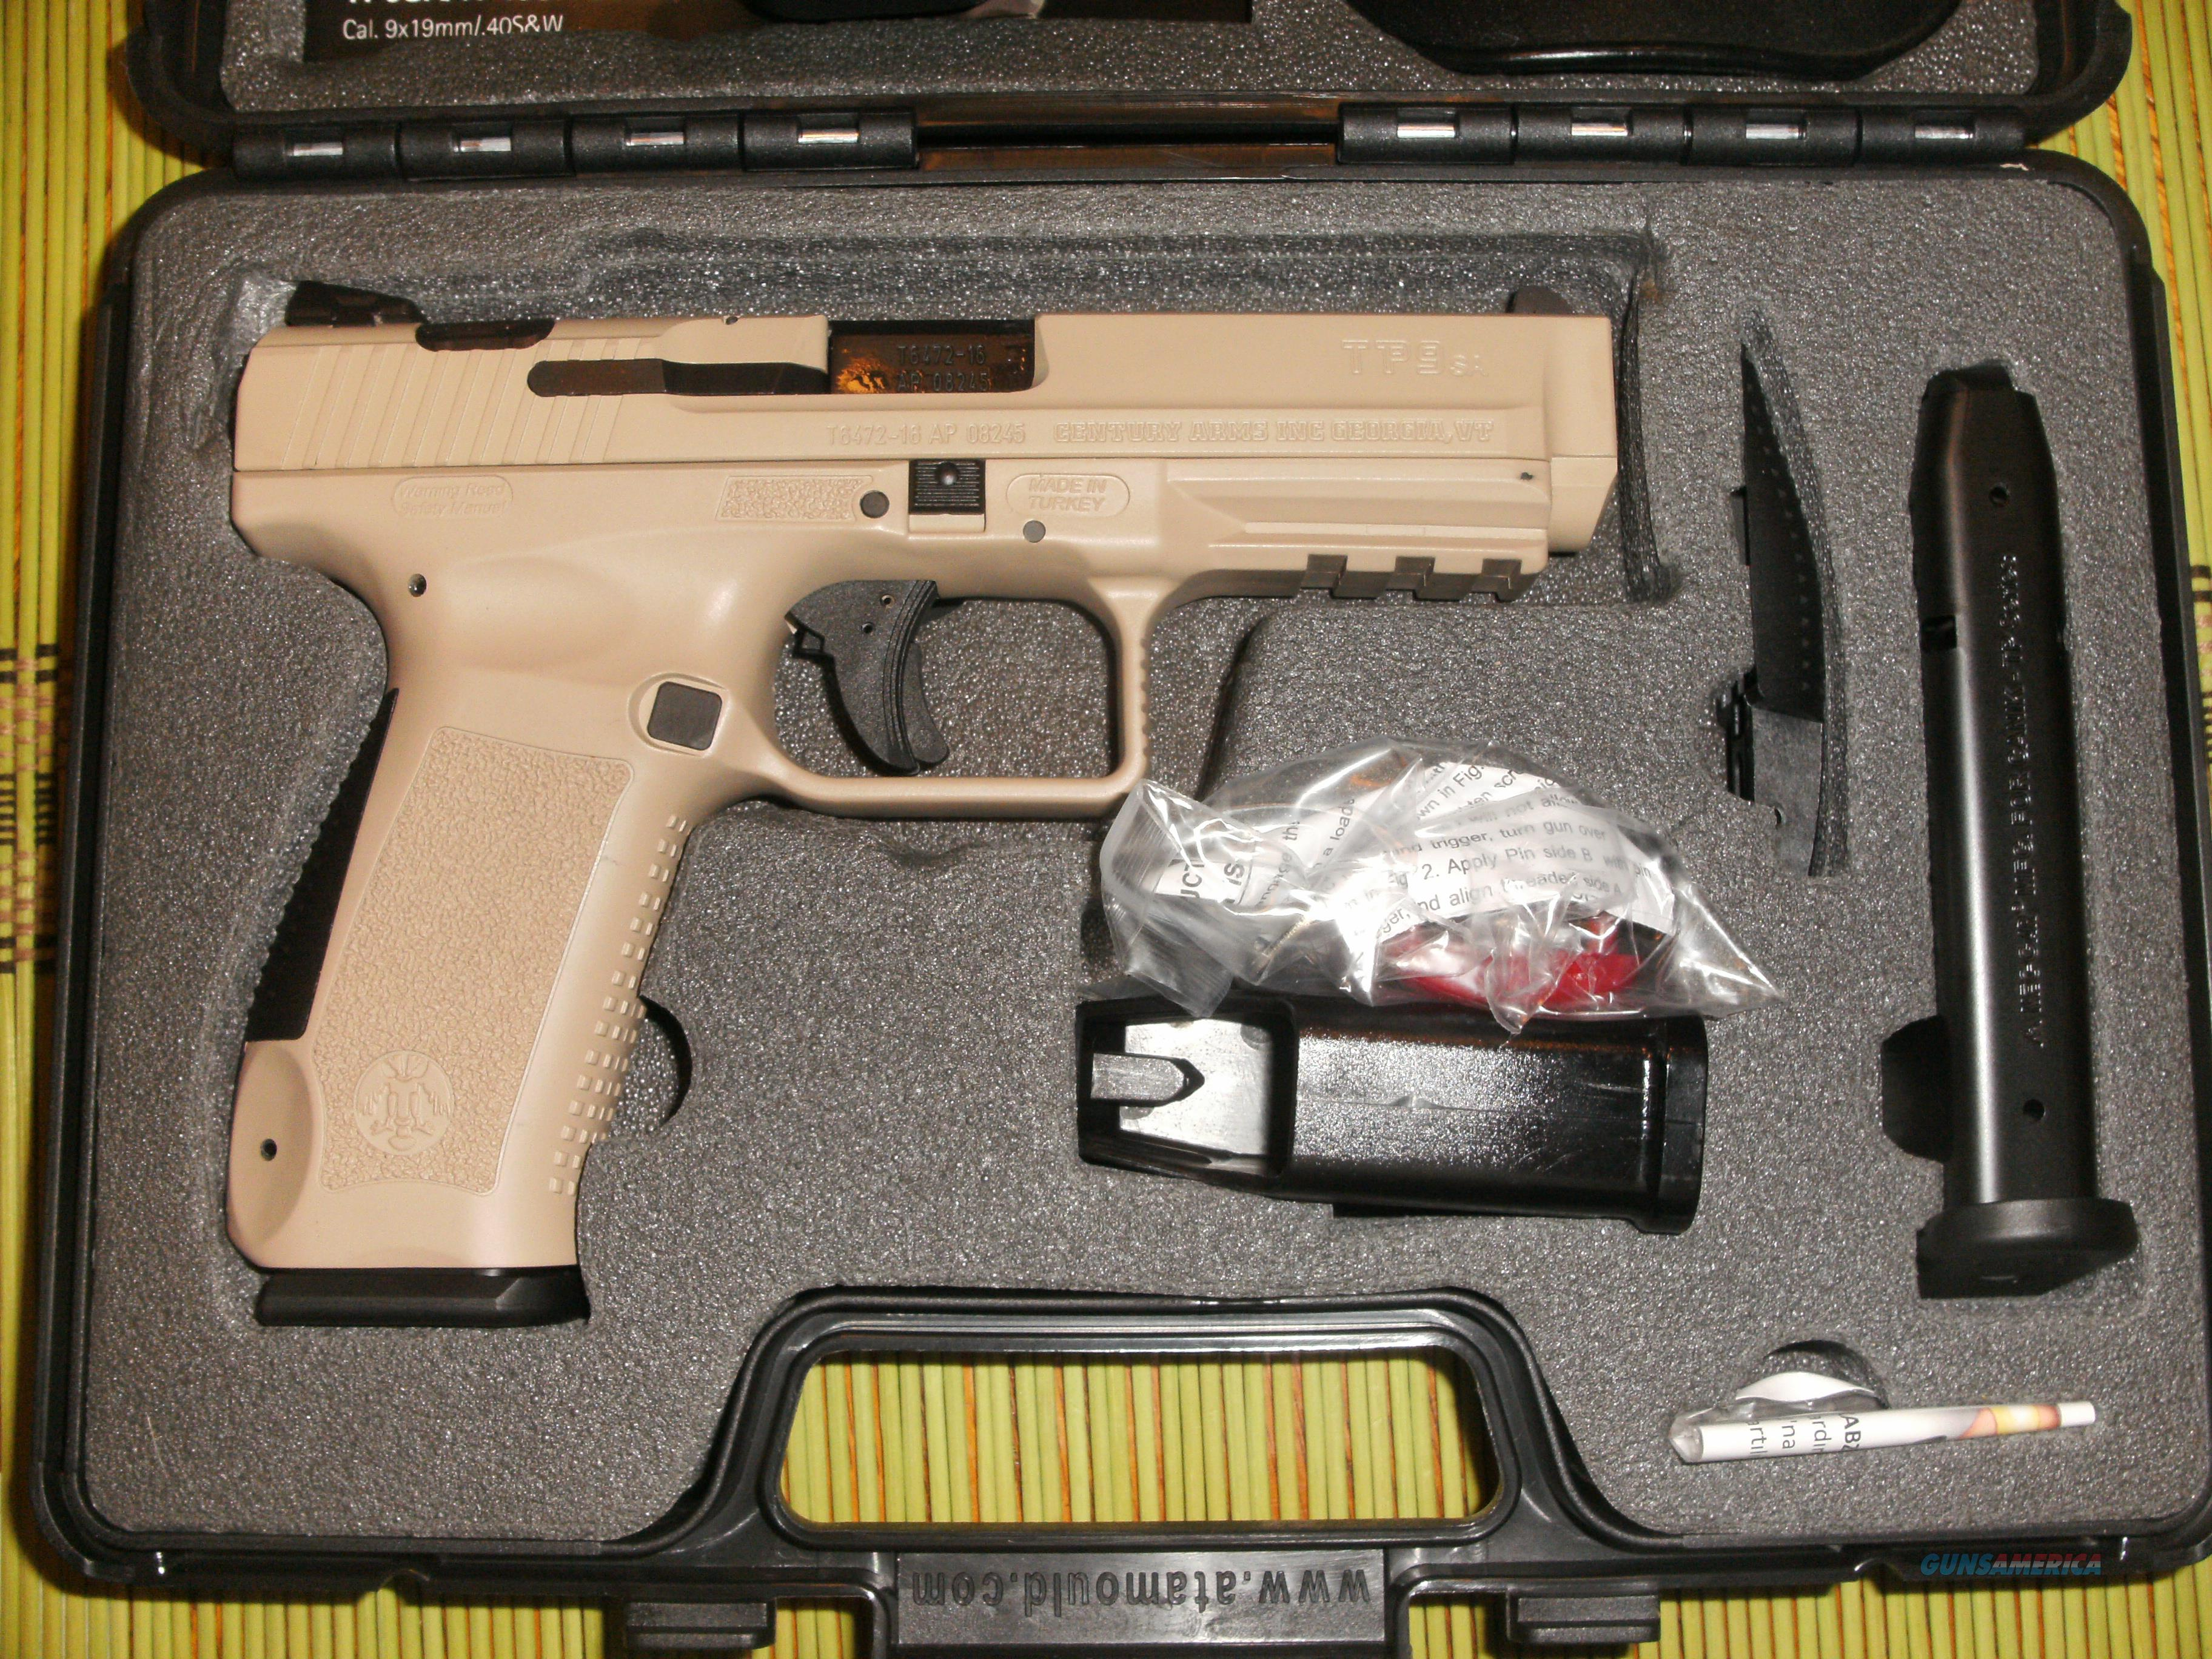 CENTURY ARMS - CANIK TP9SA - DESERT TAN - 2 18 RD MAGS, HOLSTER, CASE -  FAST SHIPPING